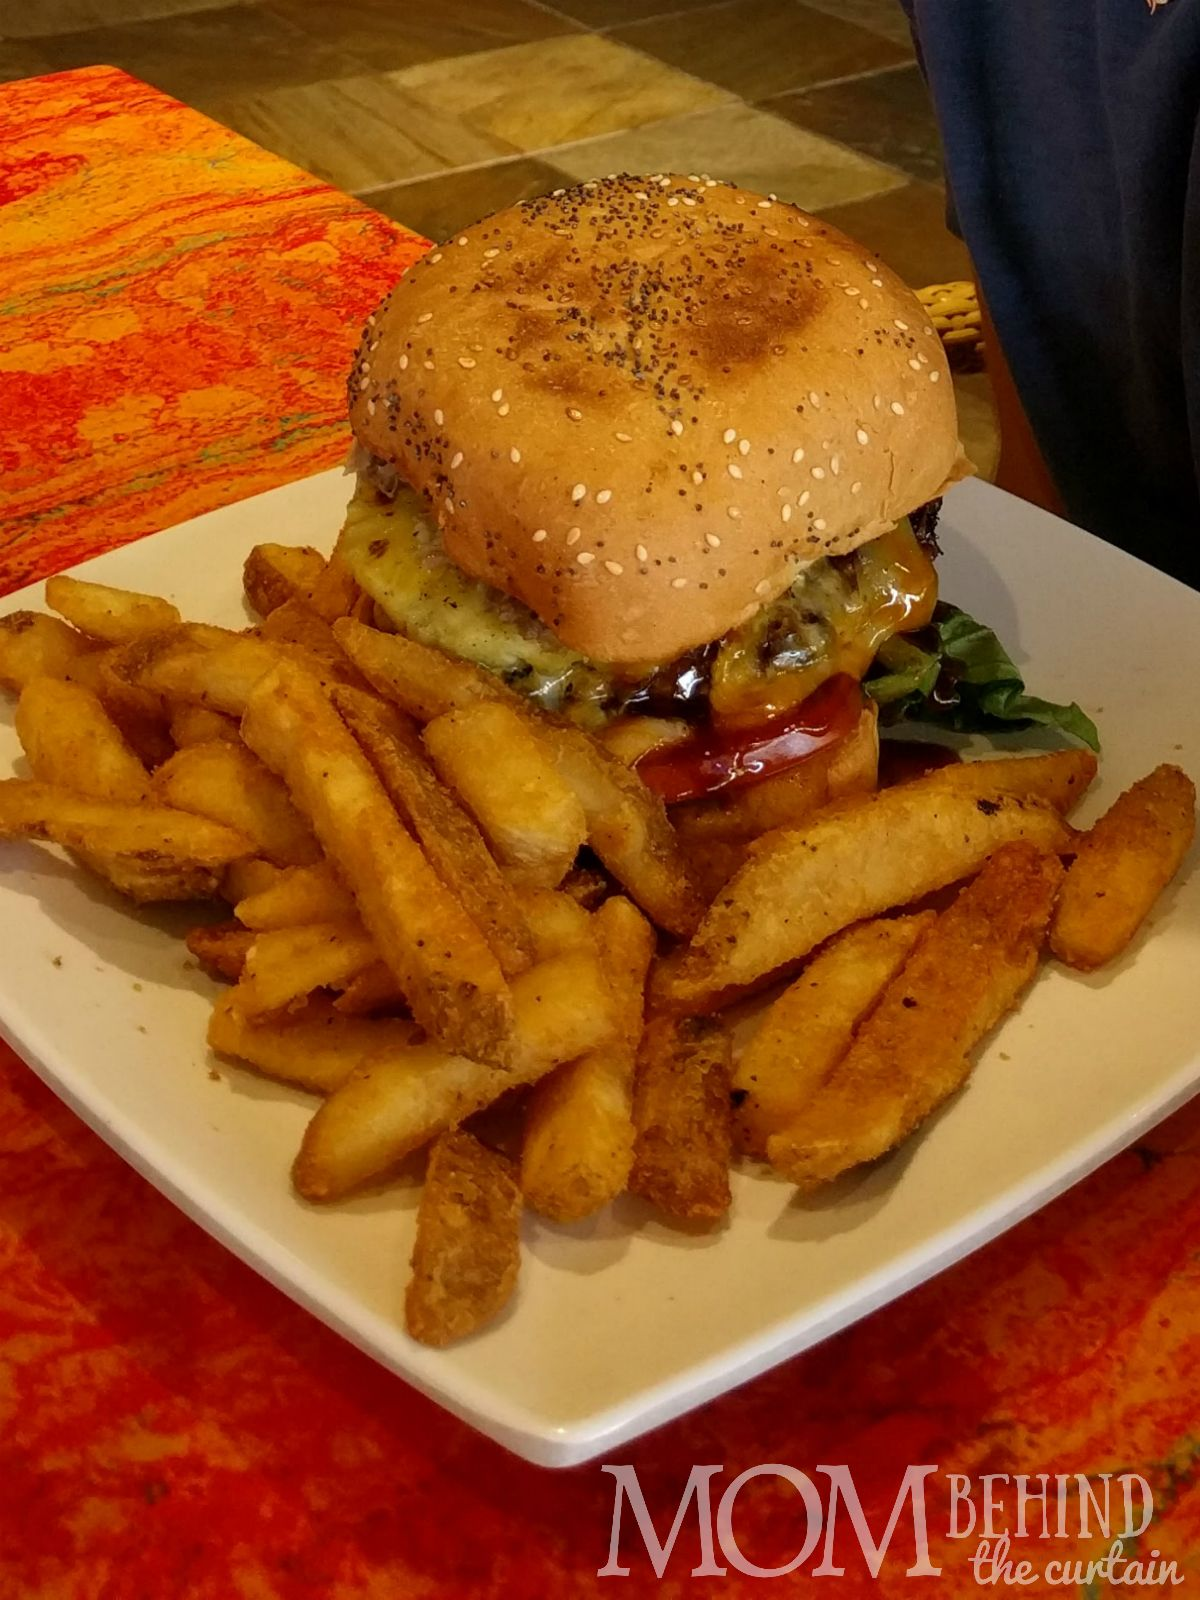 Best burger on the beach Ka'anapali Grille & Tap Room